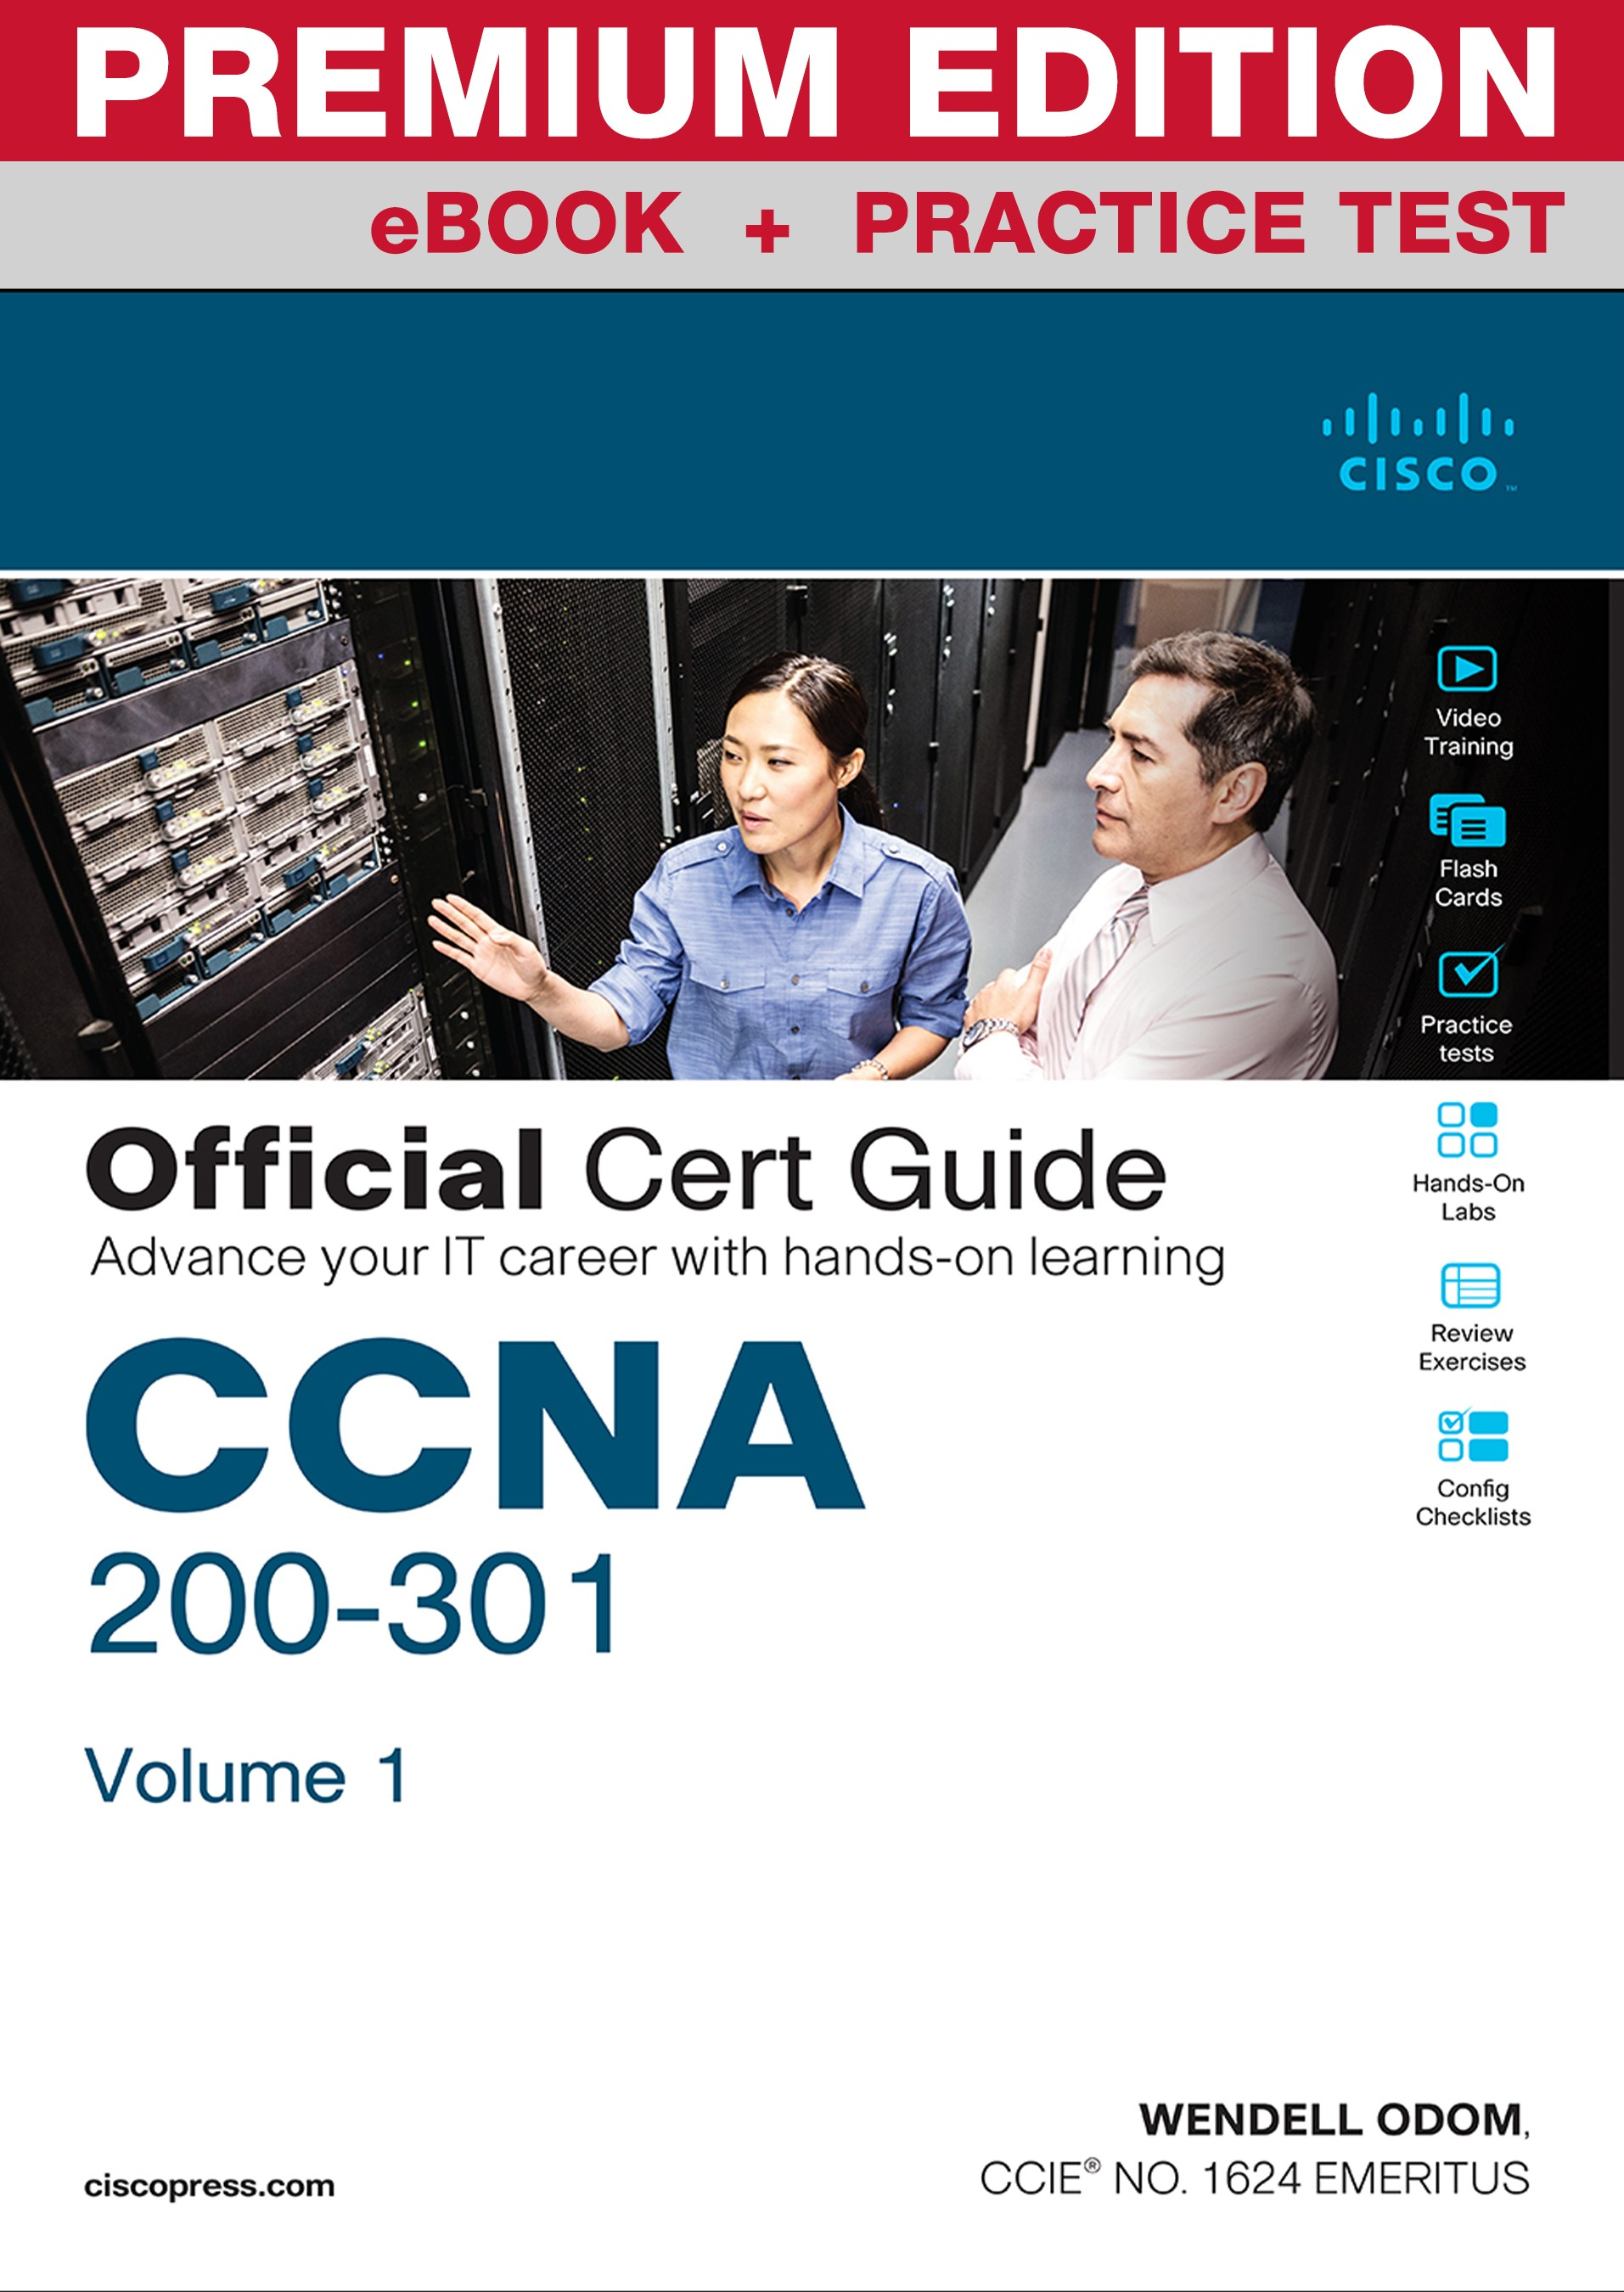 CCNA 200-301 Official Cert Guide, Volume 1 Premium Edition